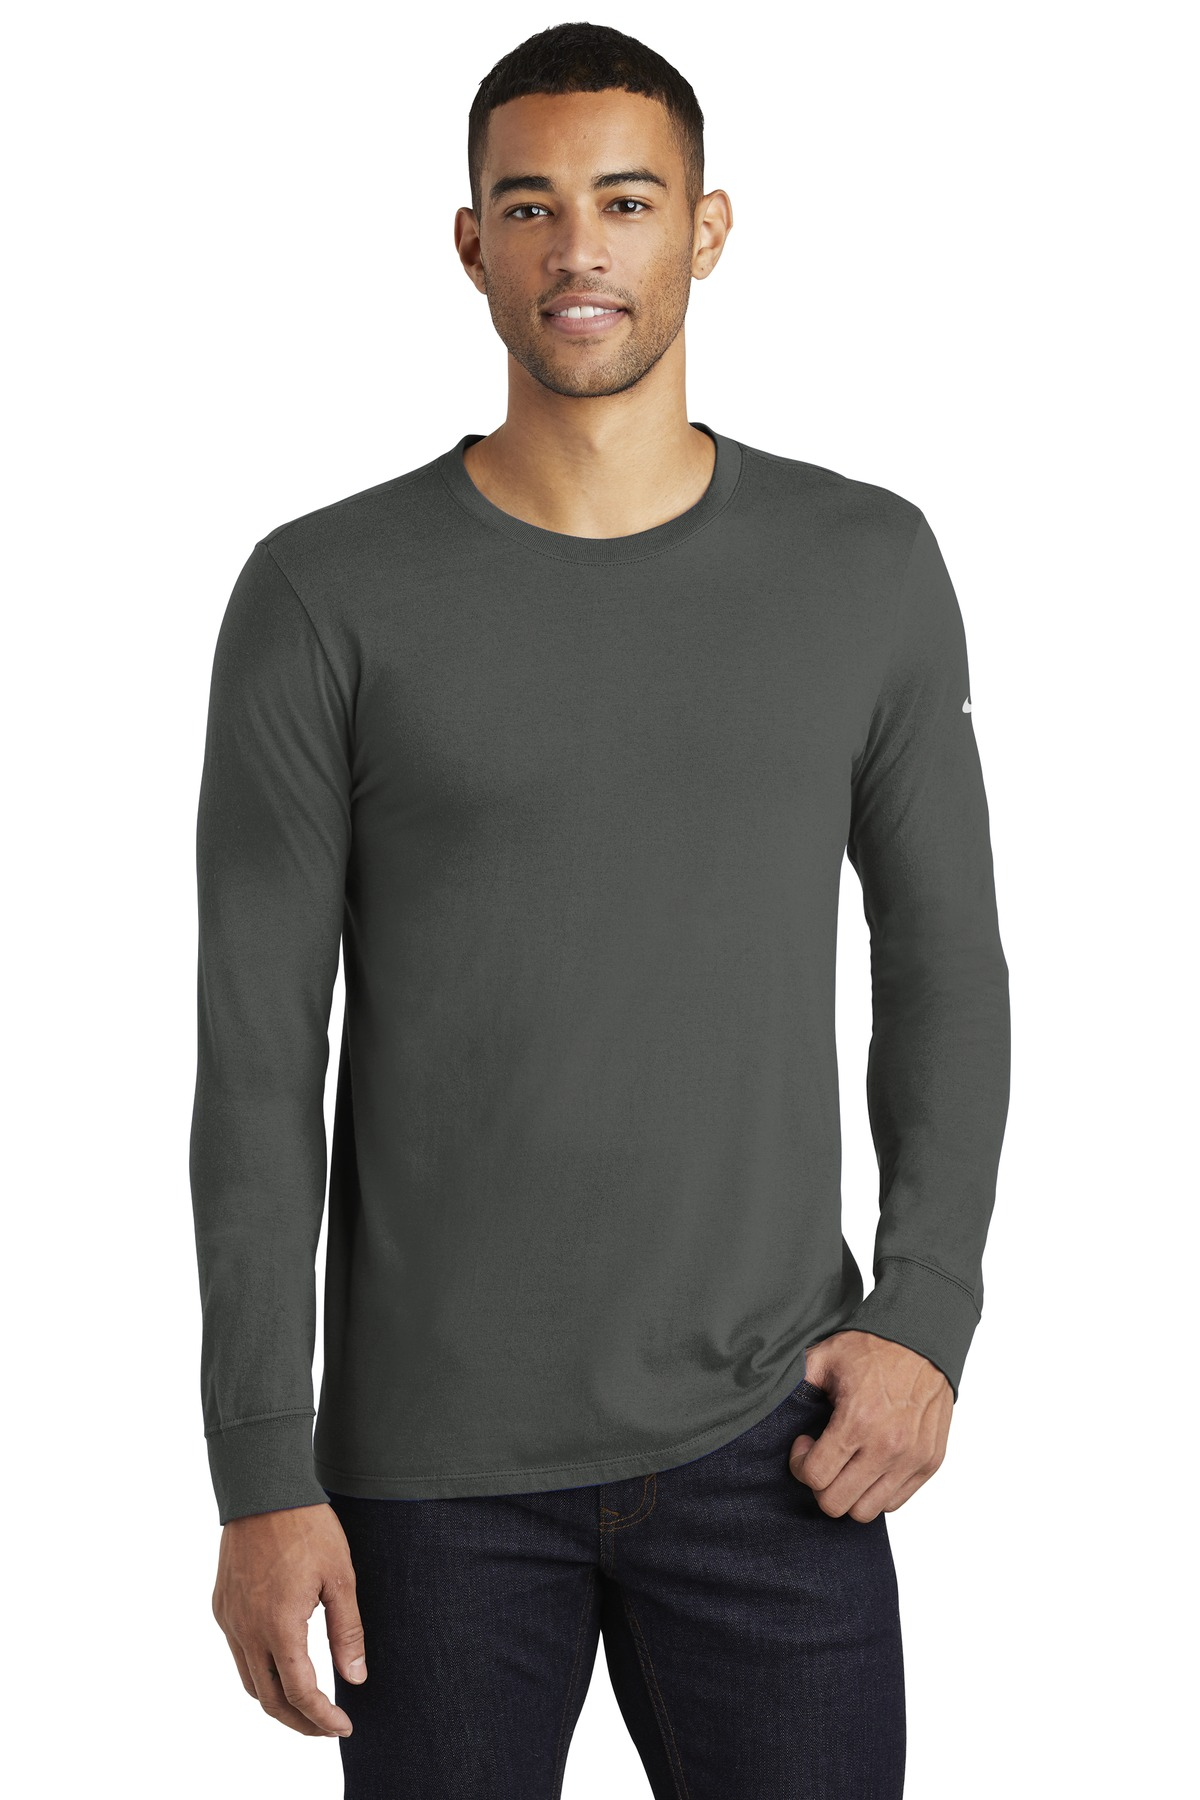 Nike Core Cotton Long Sleeve Tee. NKBQ5232 - Anthracite